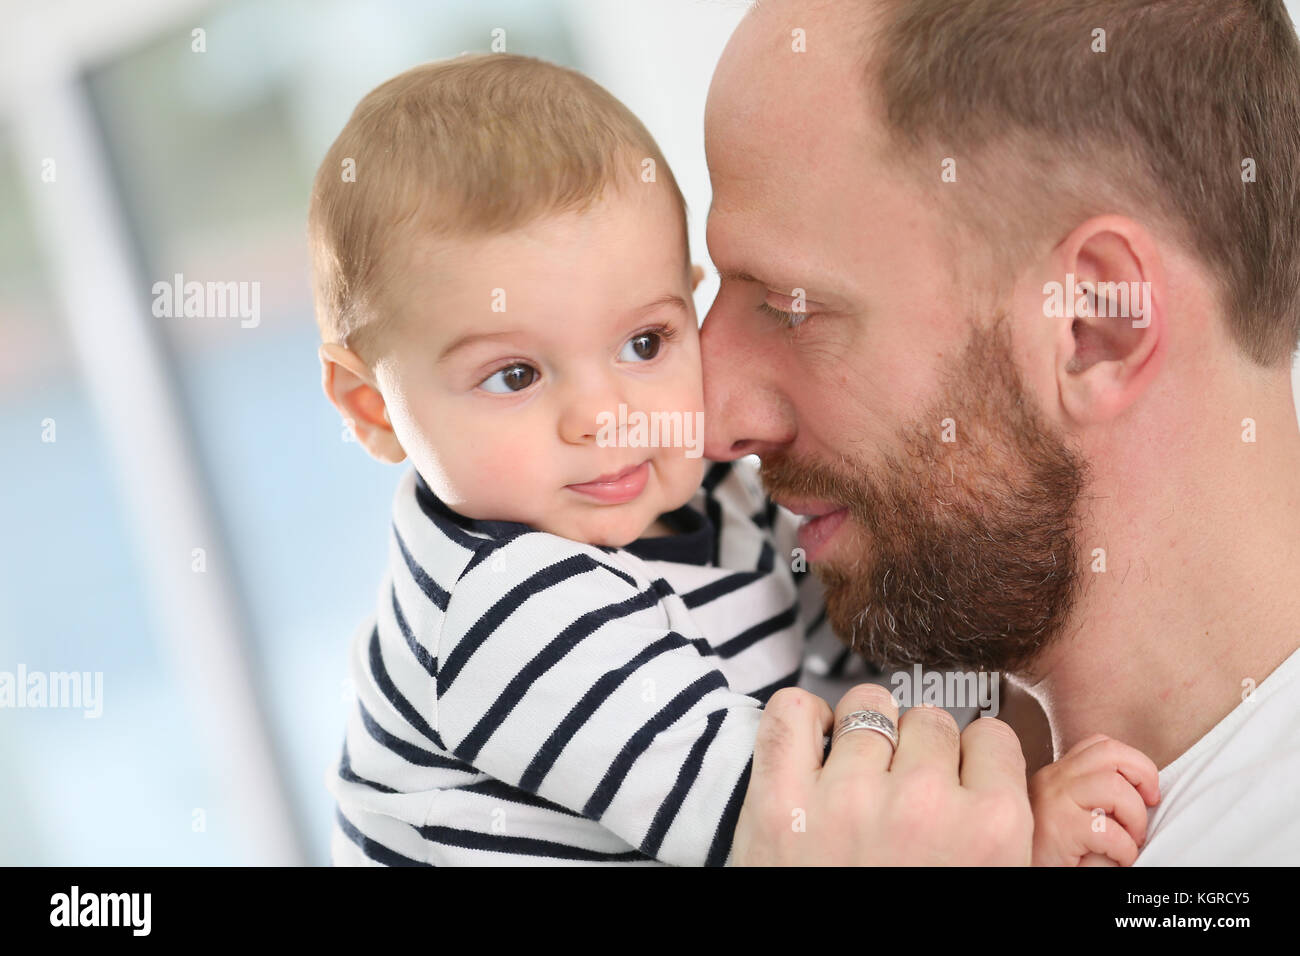 Portrait of daddy embracing baby boy - Stock Image